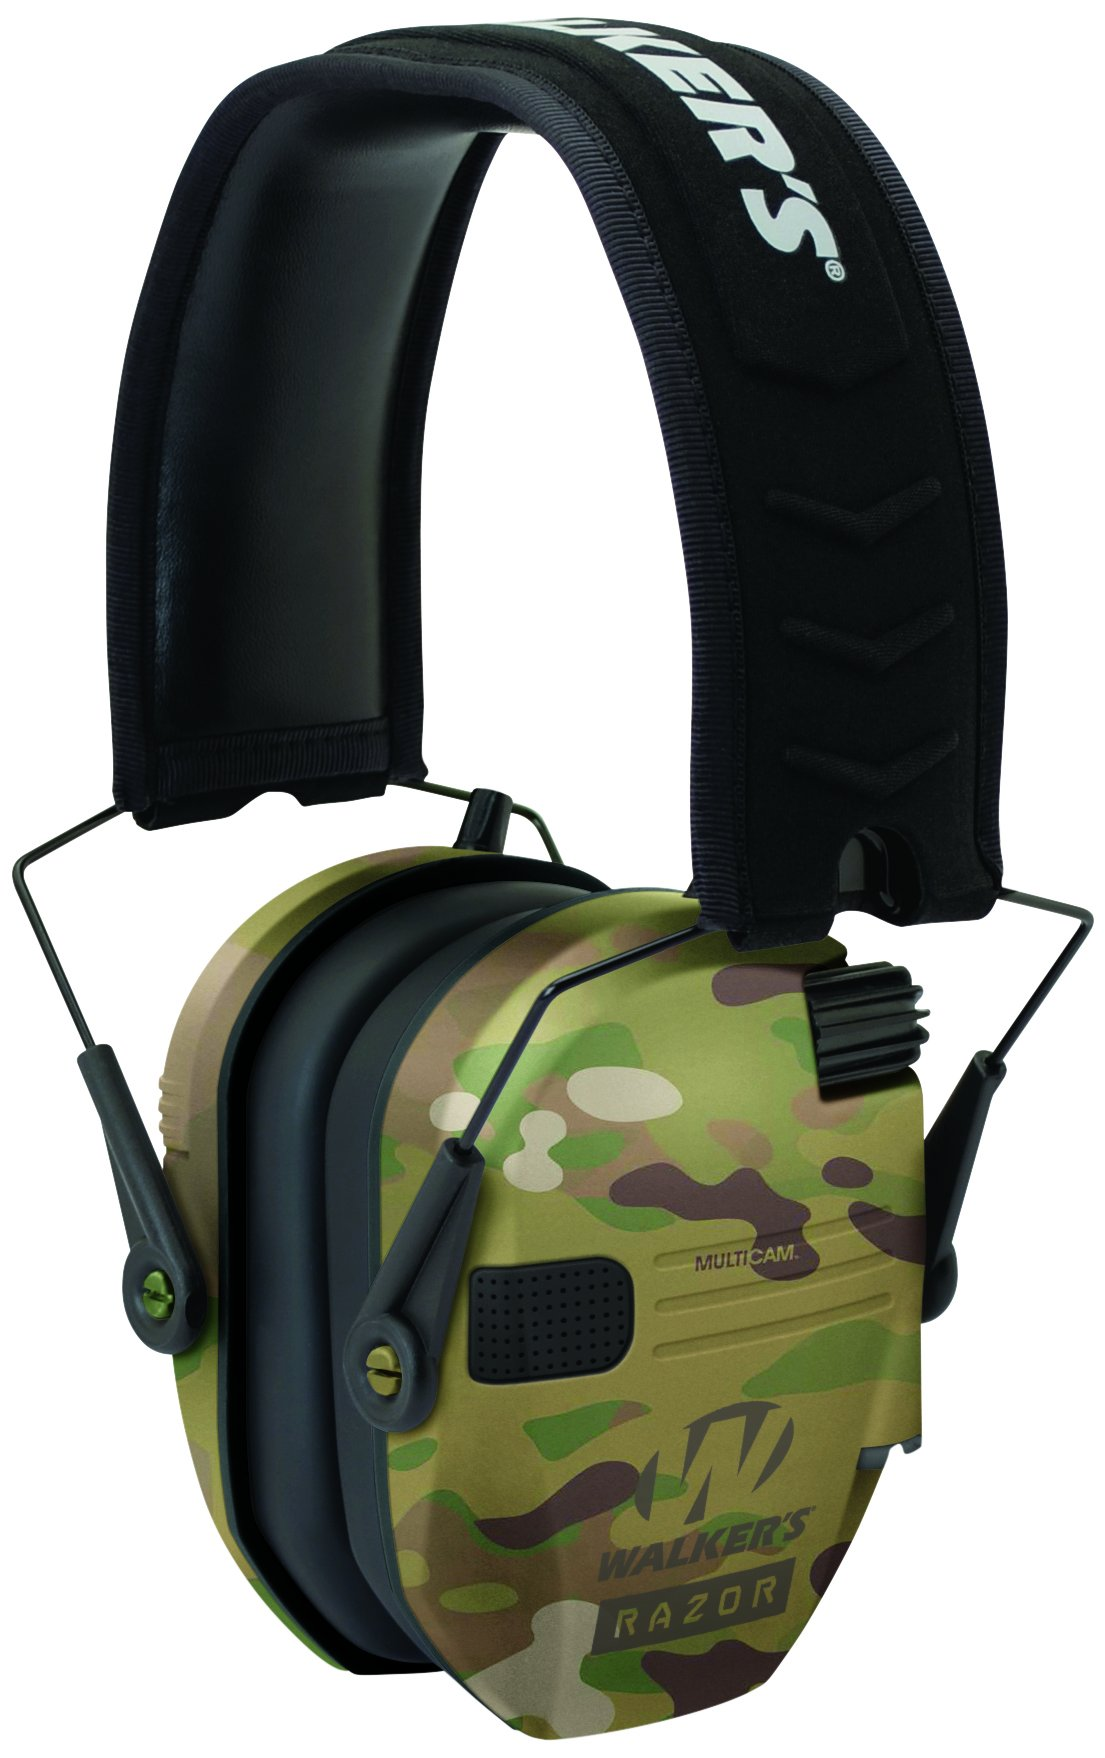 Walker's Game Ear GWP-RSEM-MCC Gear Hearing Protection Plugs by Walker's Game Ear